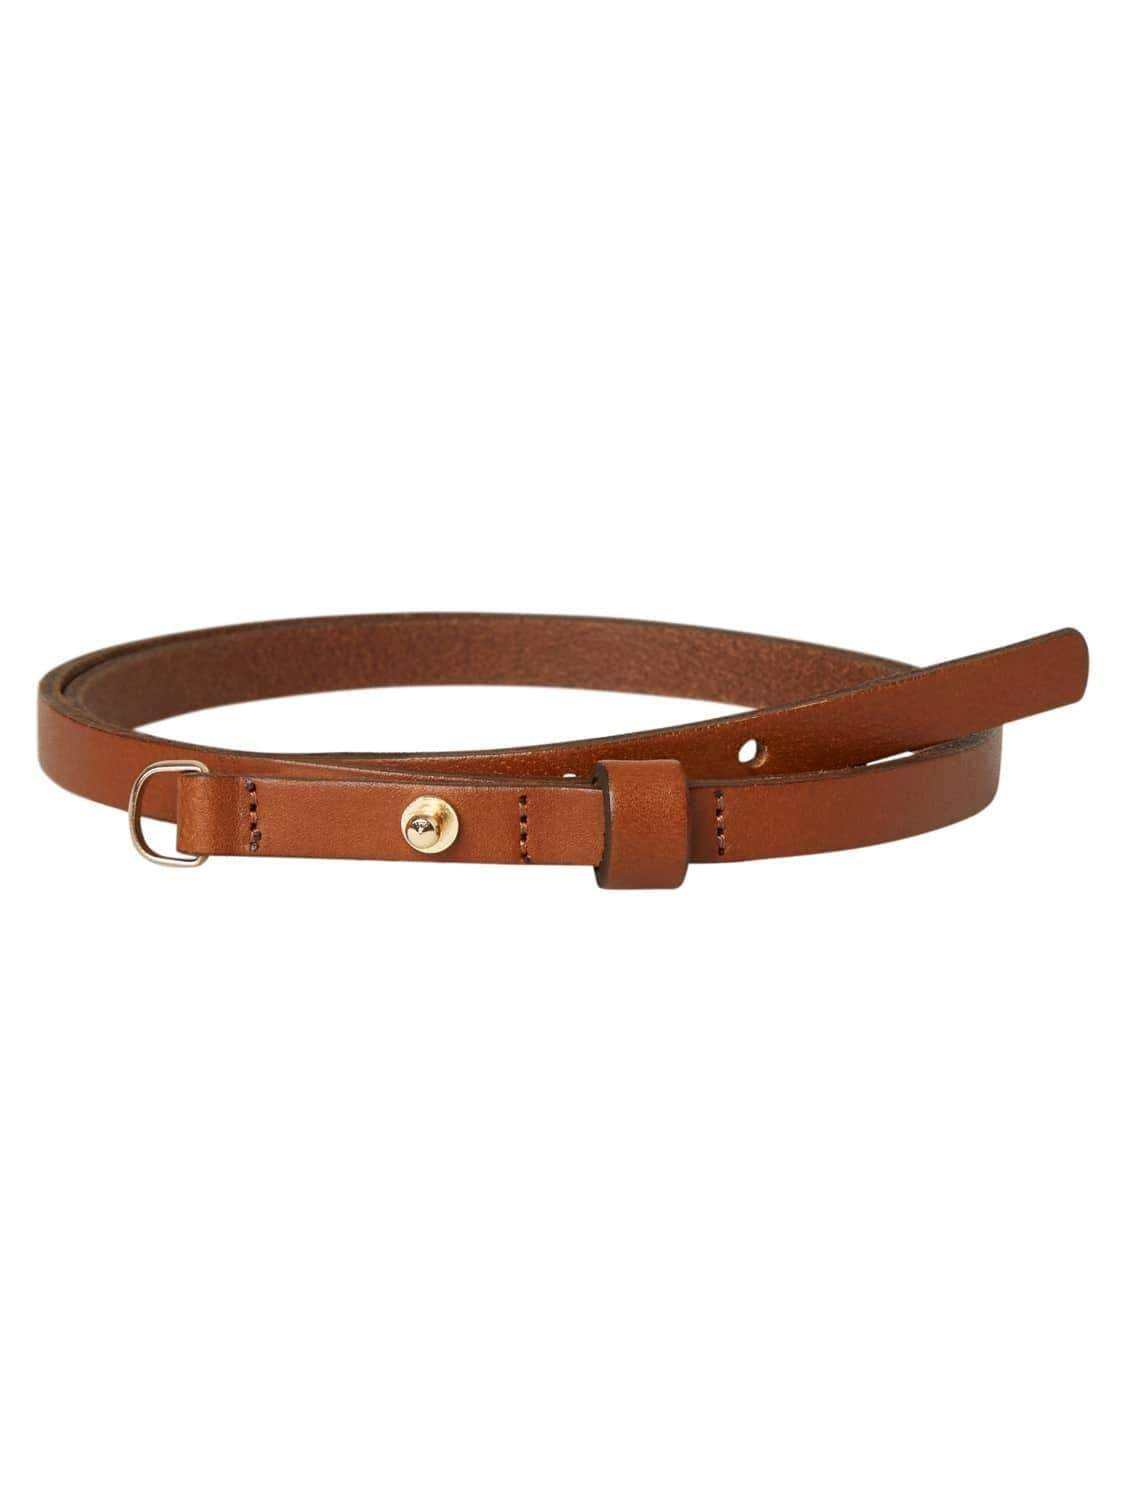 PCENYA LEATHER WAIST BELT (zwart of cognac) van Pieces